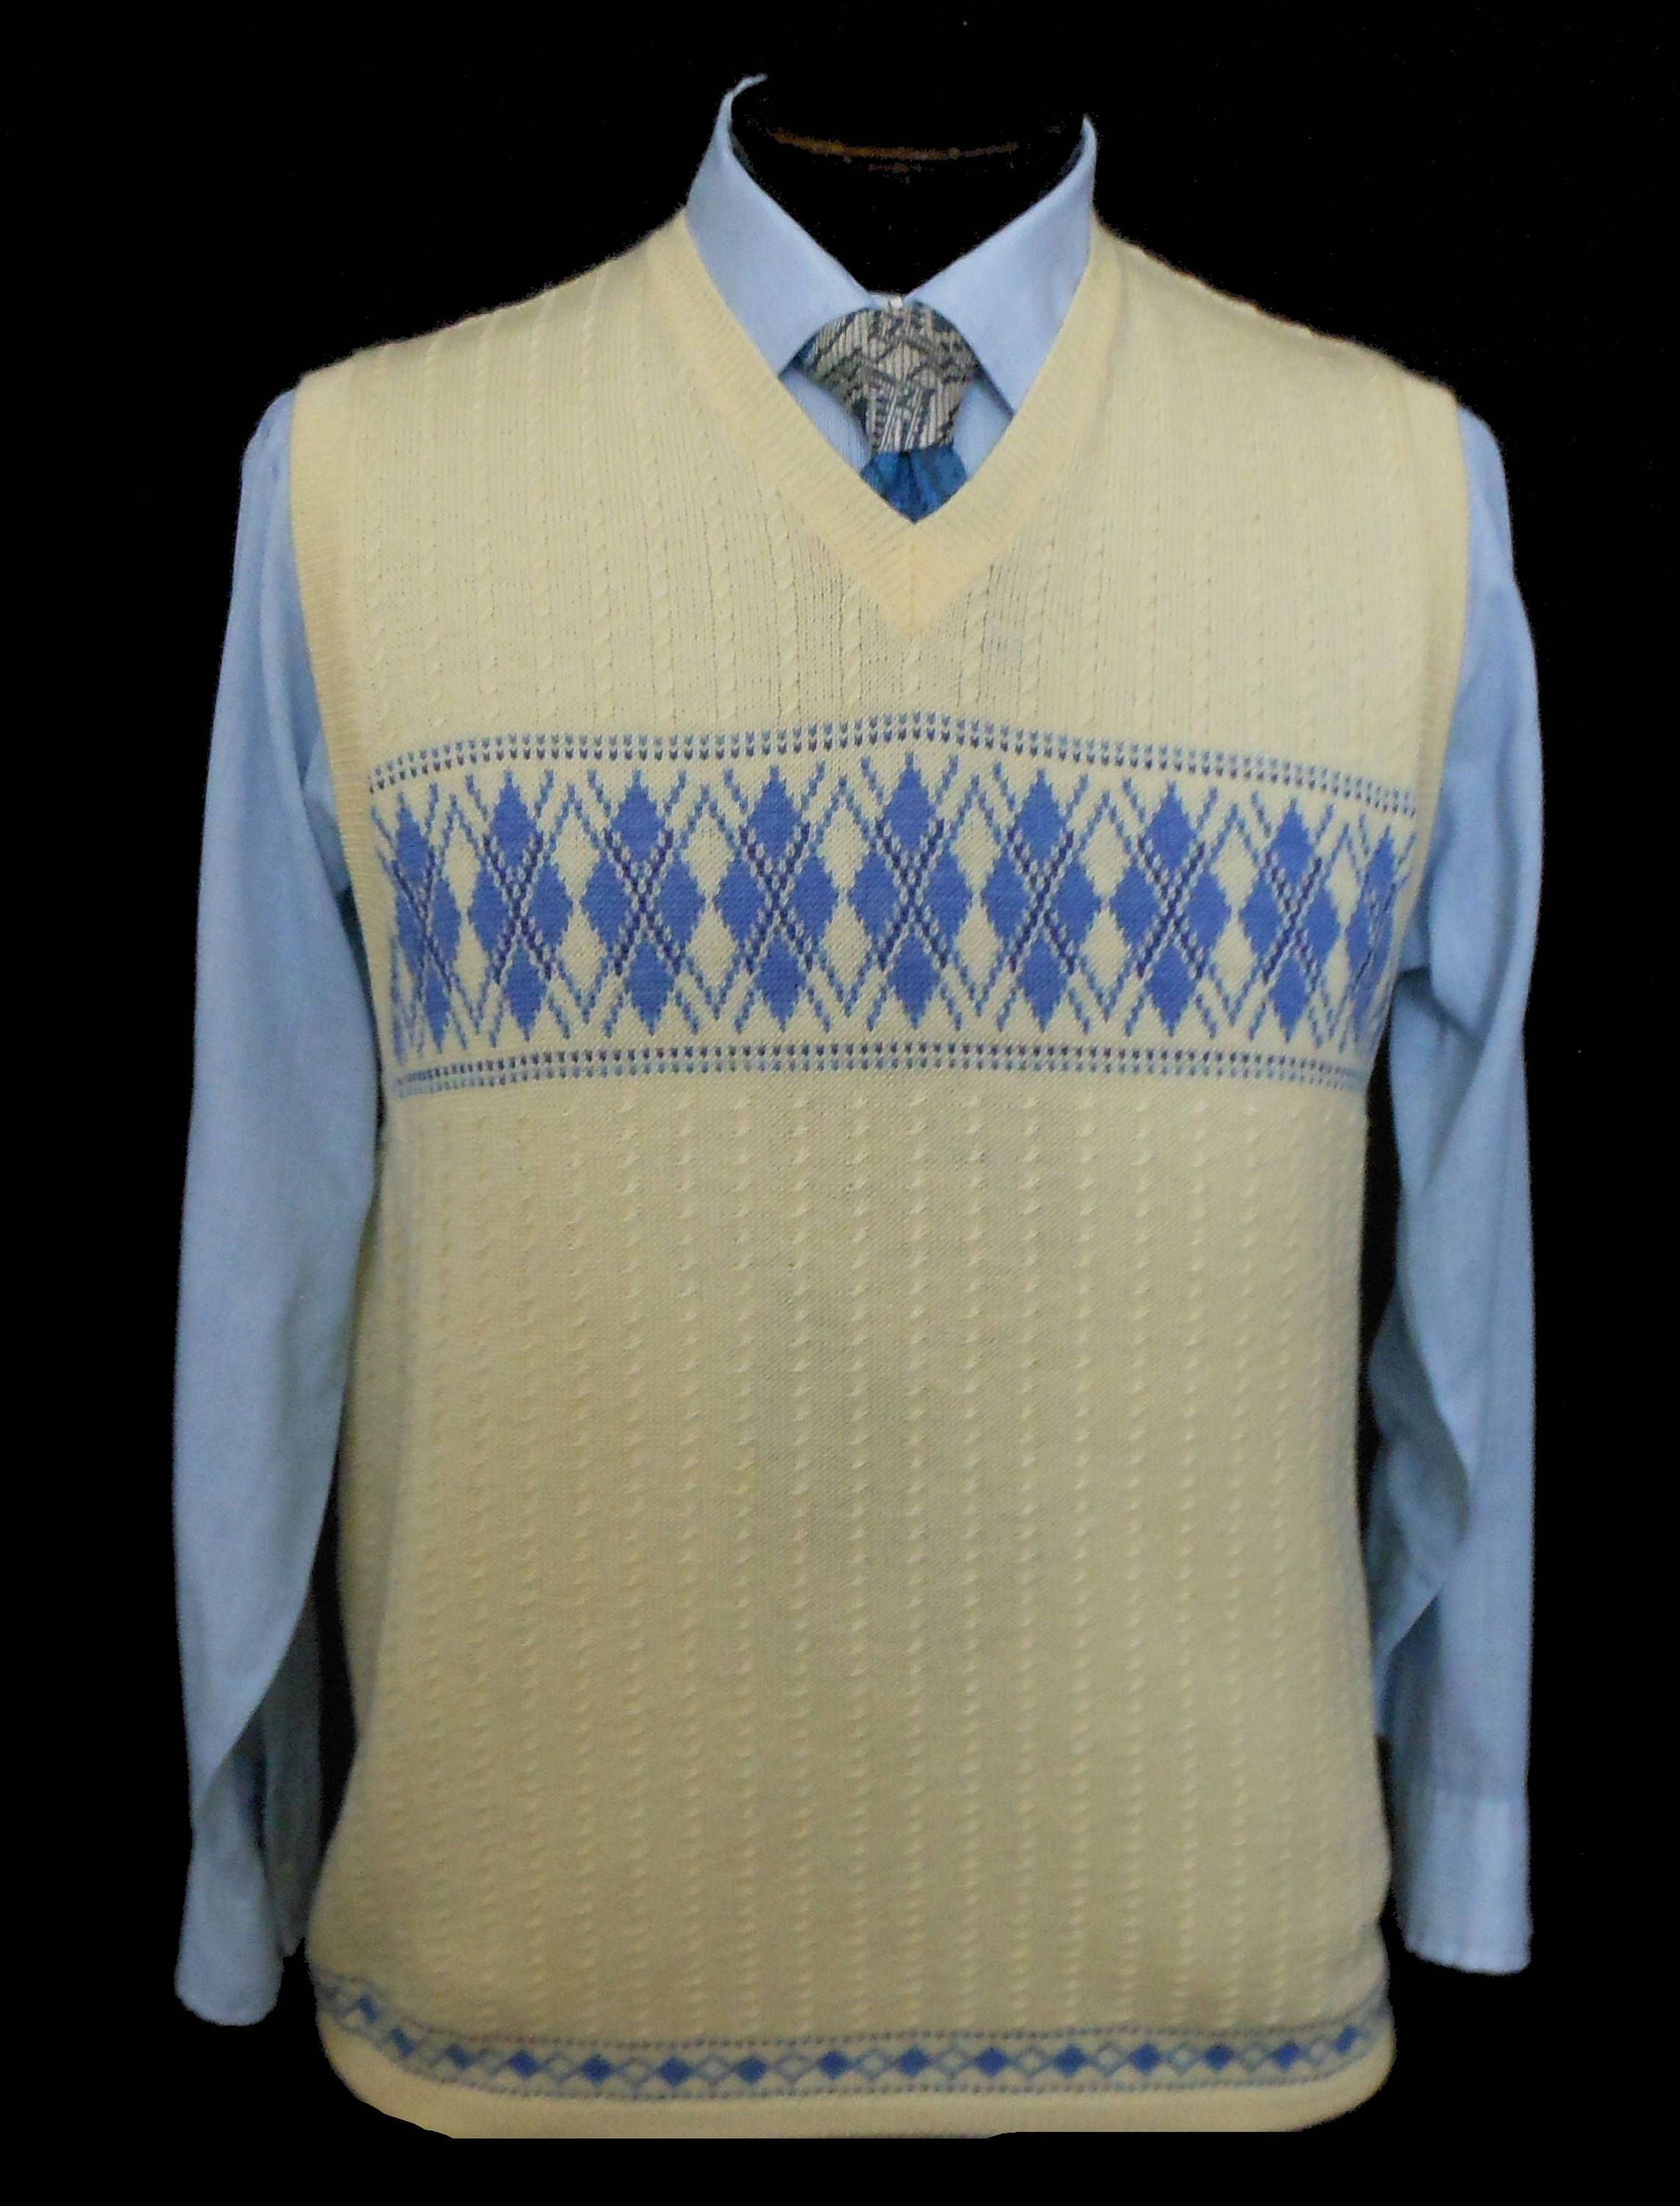 20s 30s Style Men S Cable Knit Sweater Vest 1990s Cream White And Blue Argyle Wool Pullover Size Med Mens Cable Knit Sweater Argyle Sweater Vest Sweater Vest